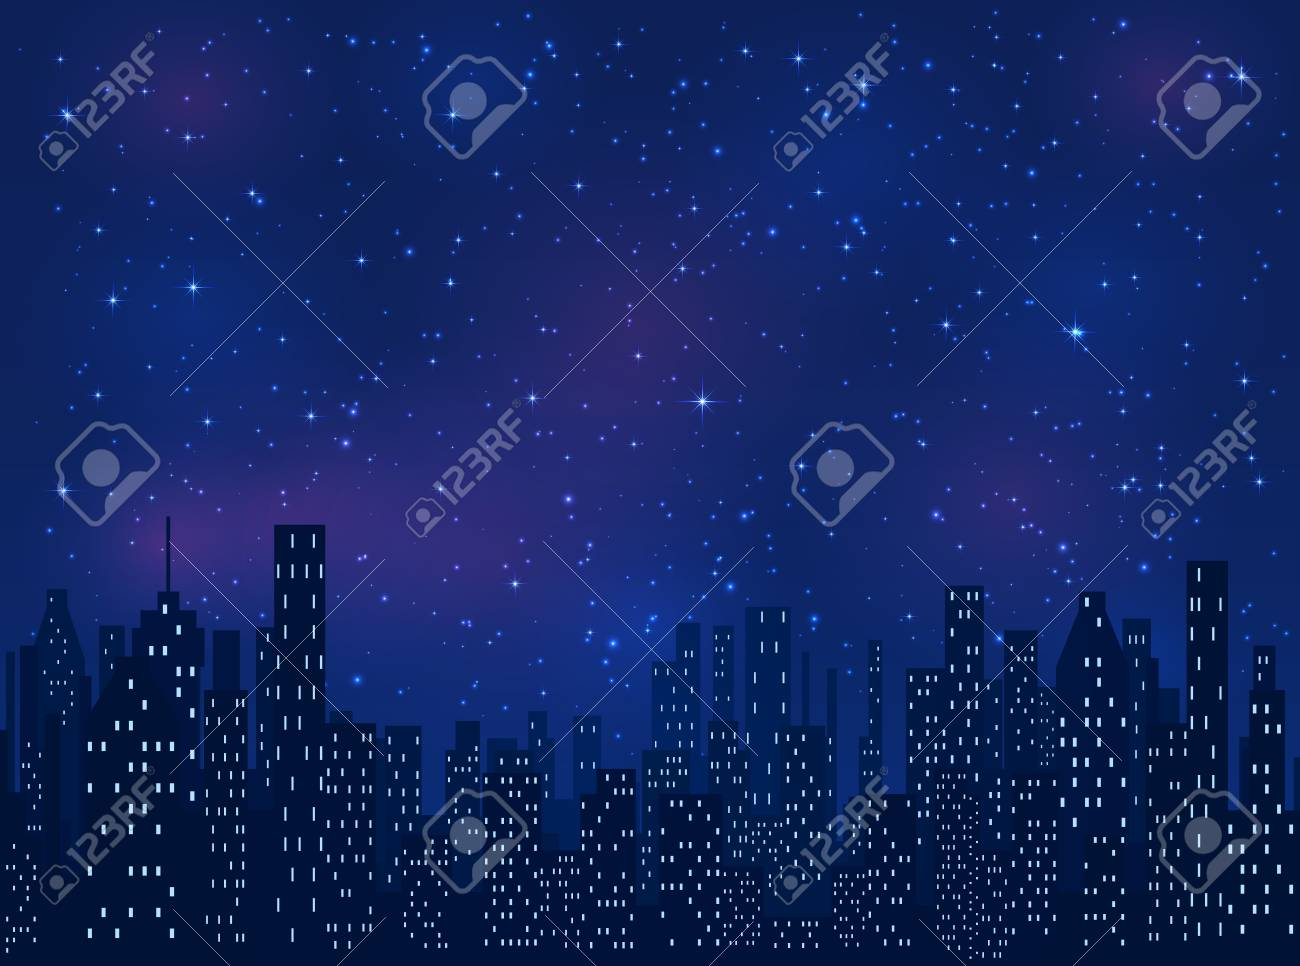 Night in the city, shining stars on blue sky background, illustration. - 56642052